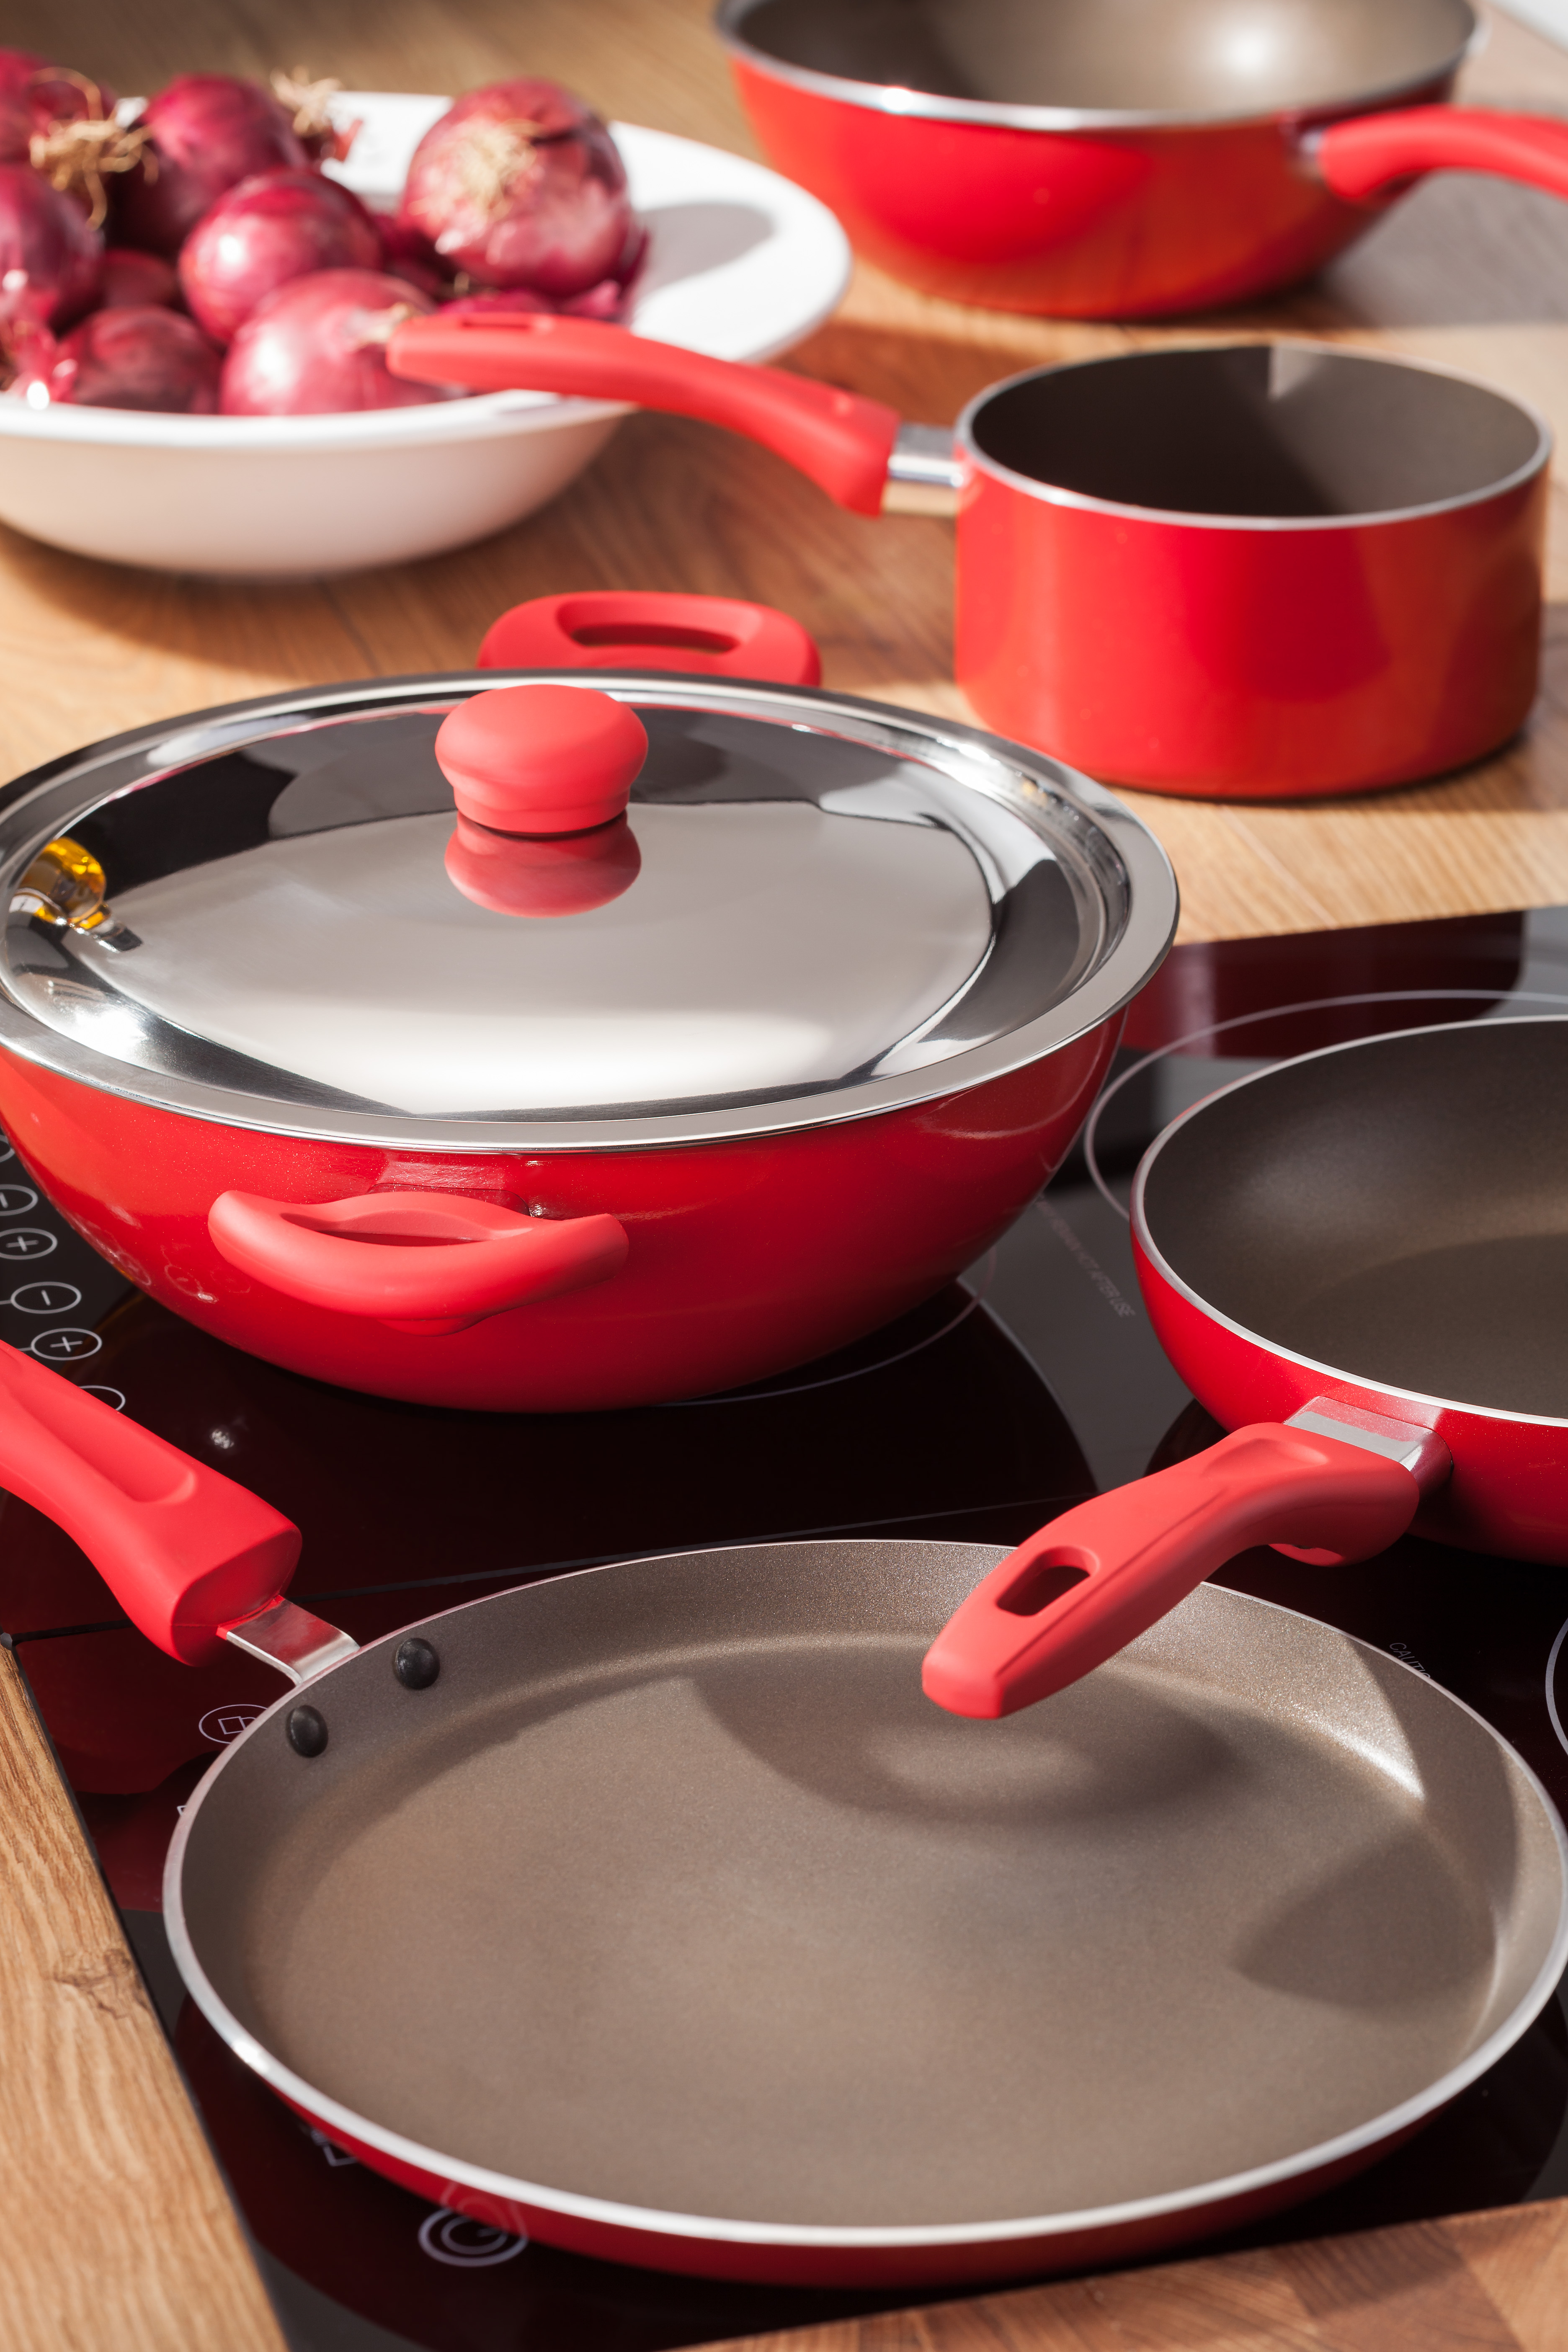 Judge Radiant Cookware